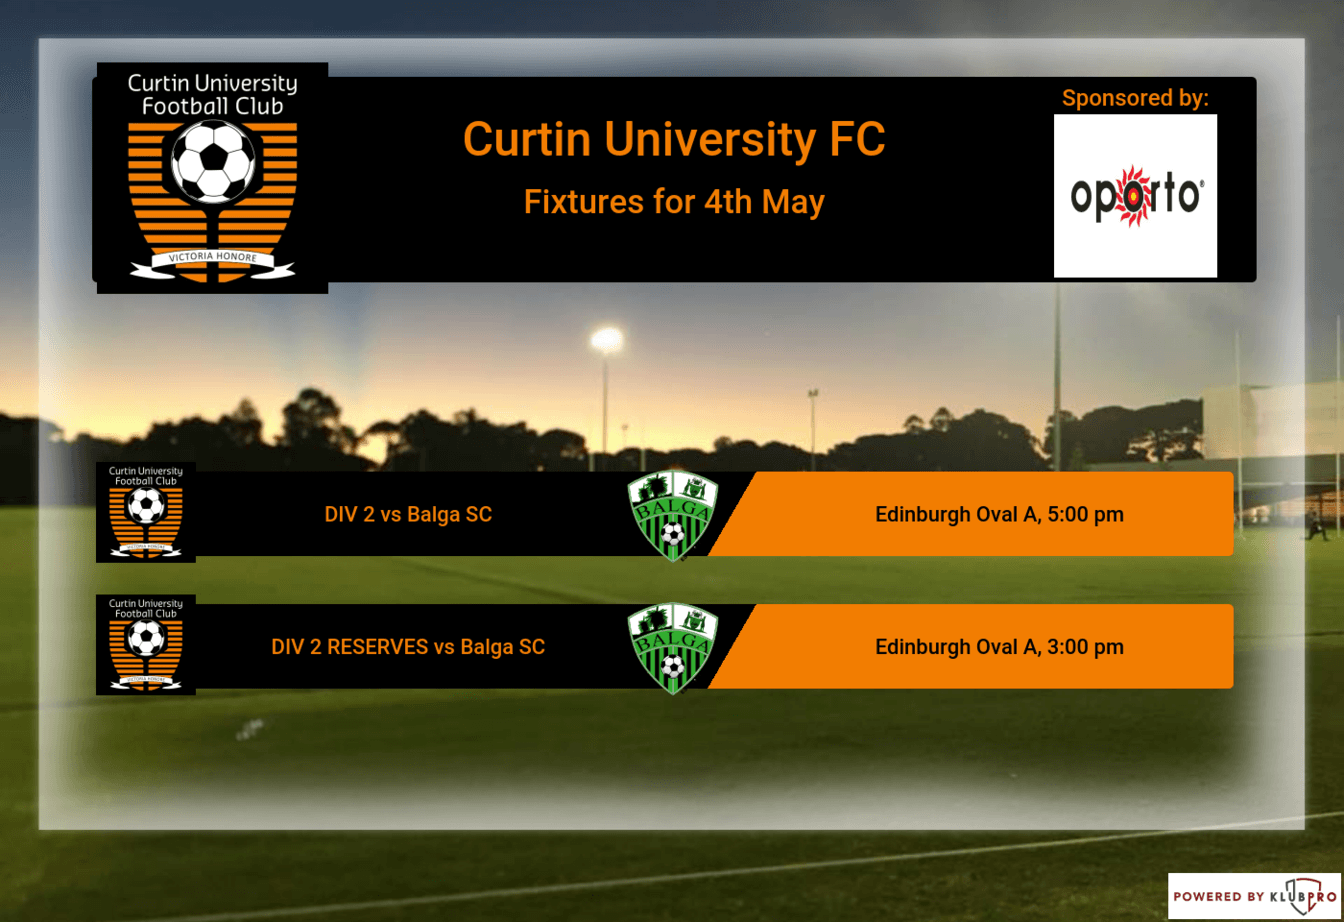 Curtin University FC-club-fixtures-4th May-1552290356498 (1).png